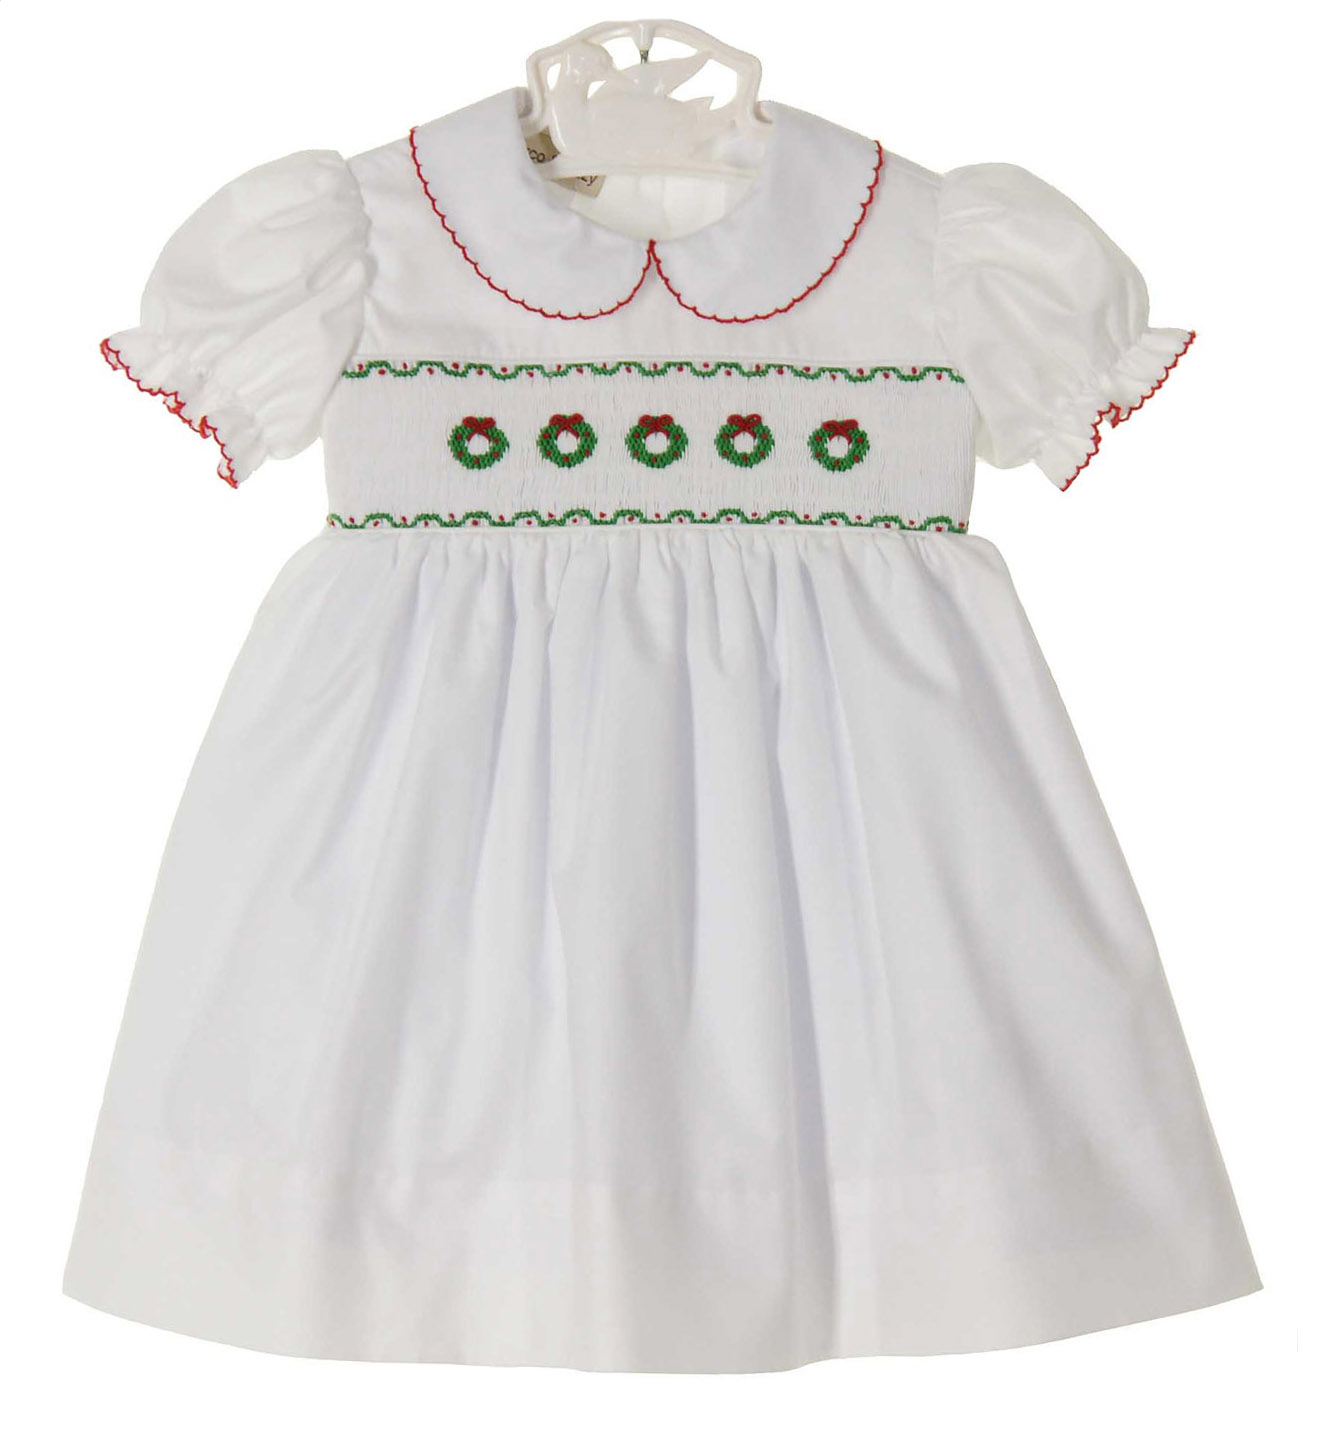 click to enlarge - Smocked Christmas Dress